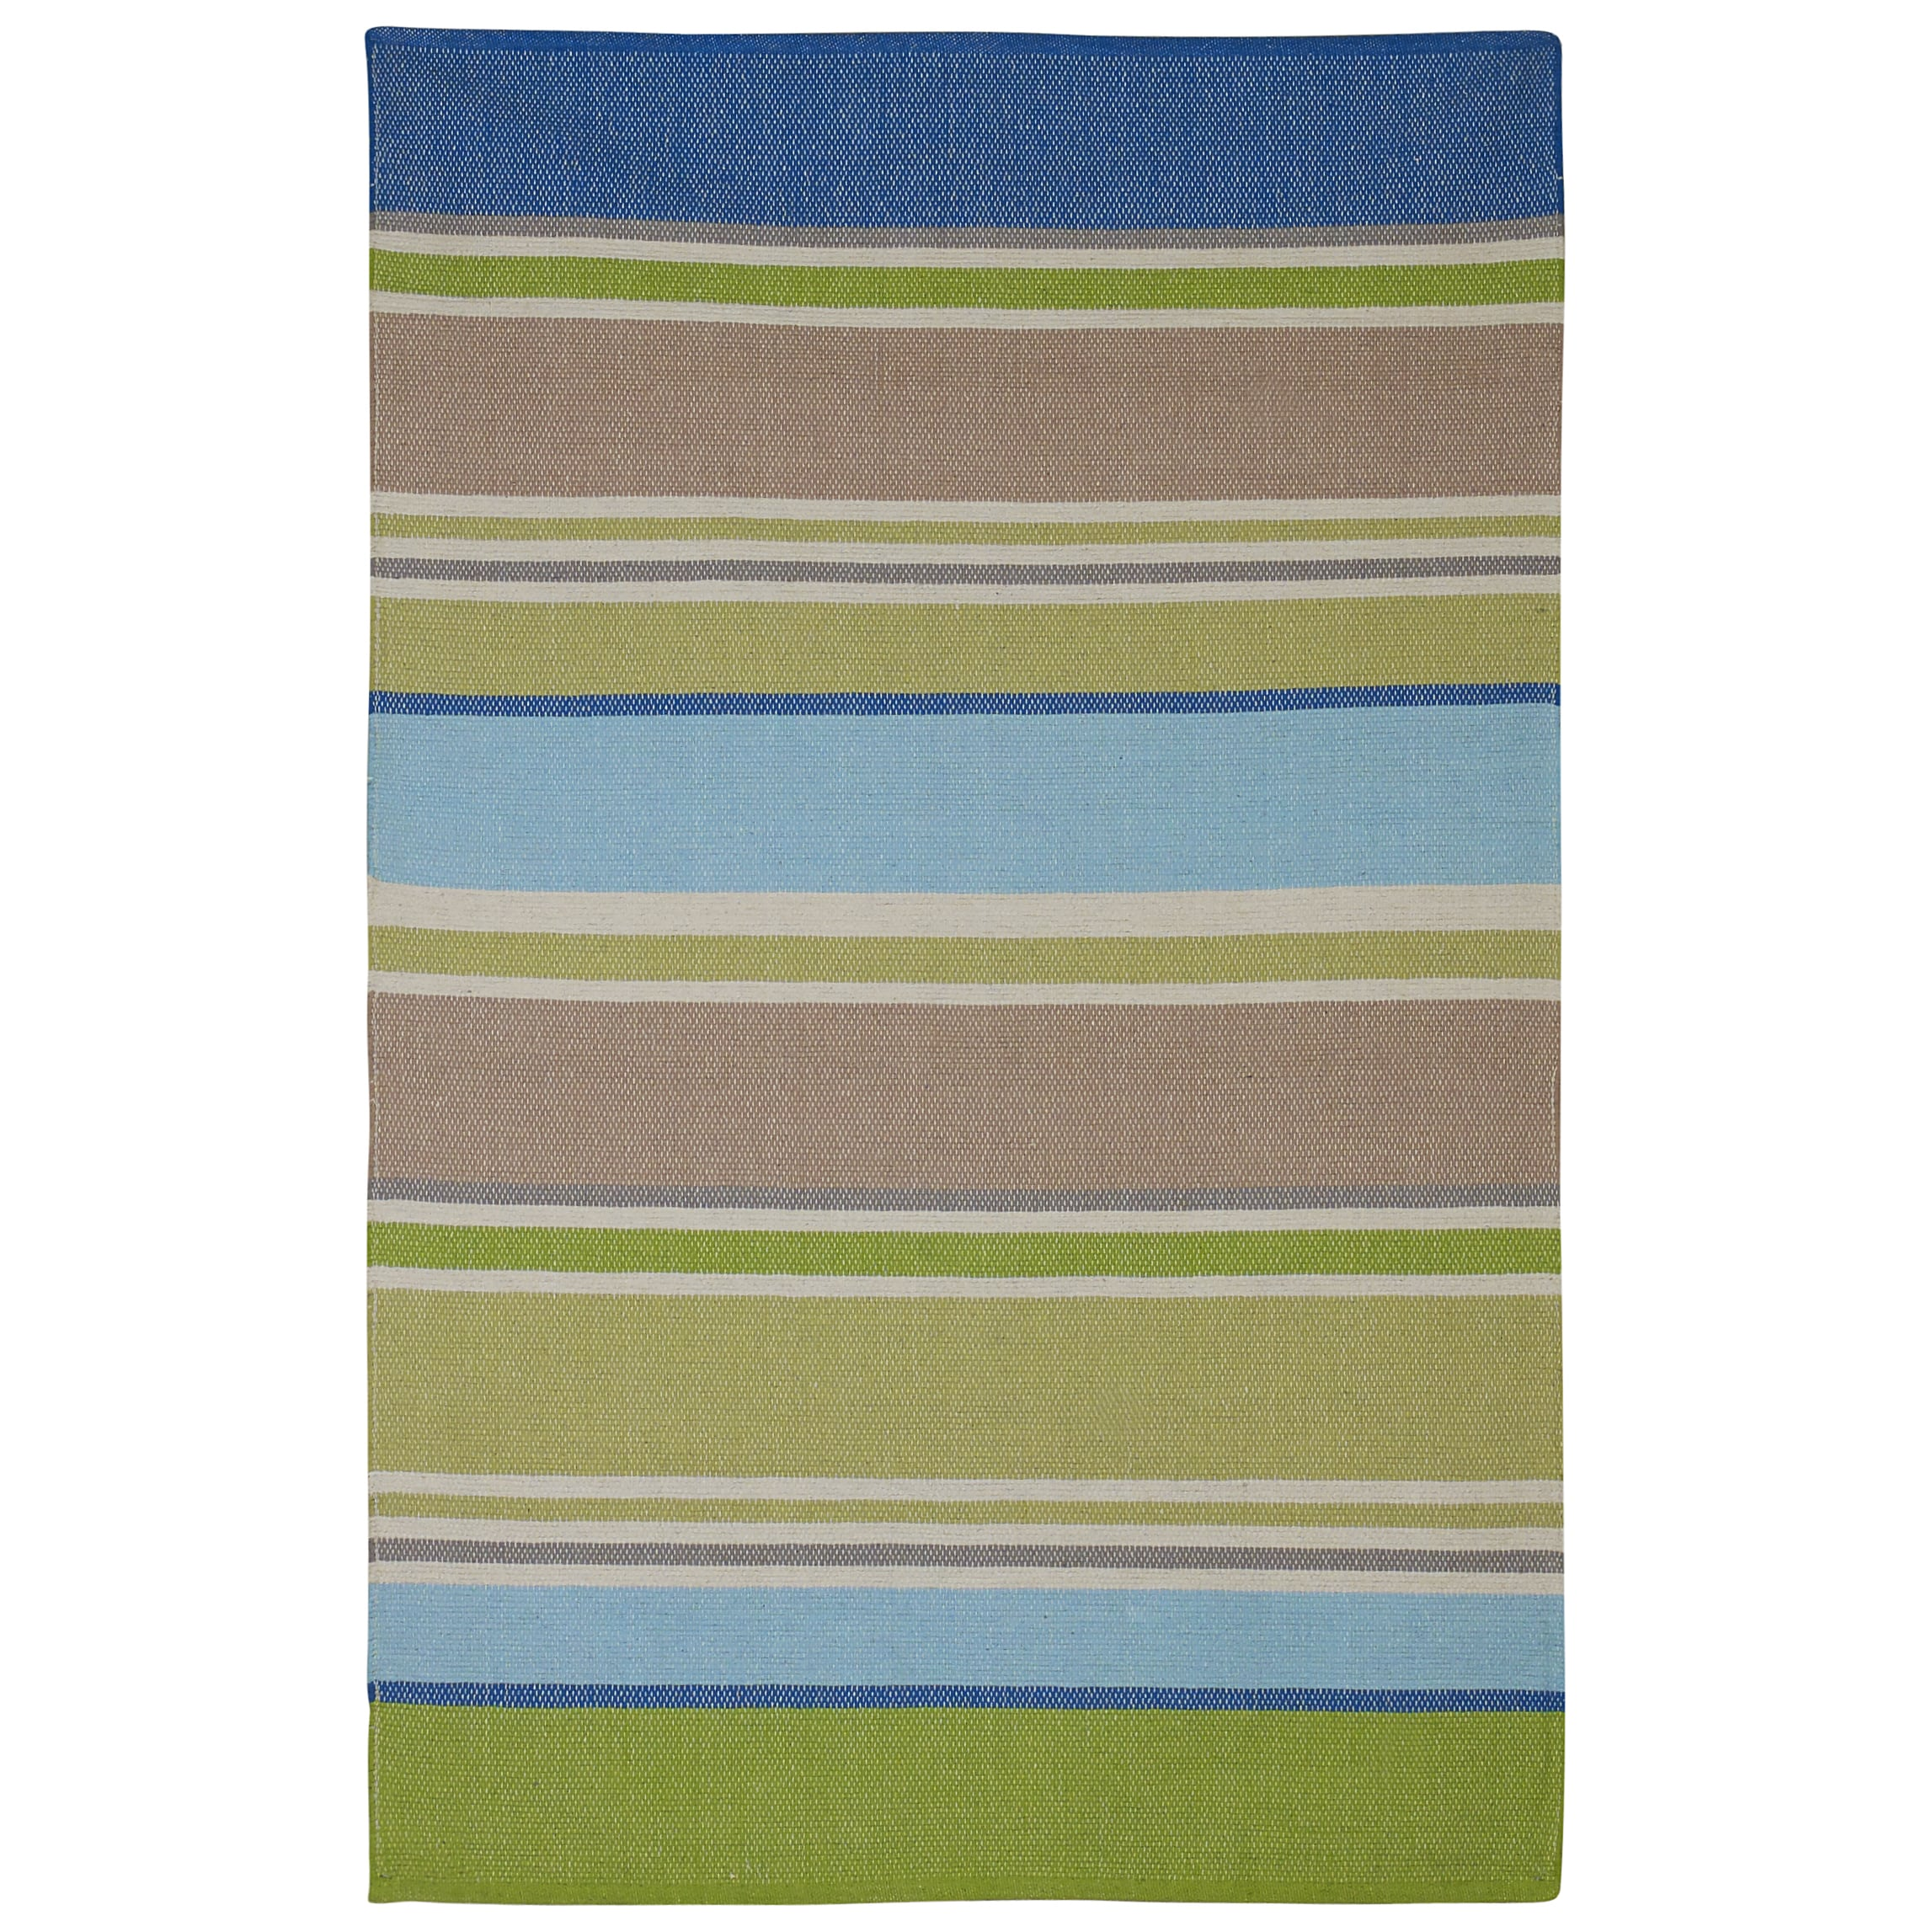 Fab Habitat Handmade Indo Hope Blue and Green Multicolored Cotton Rug (8' x 10')